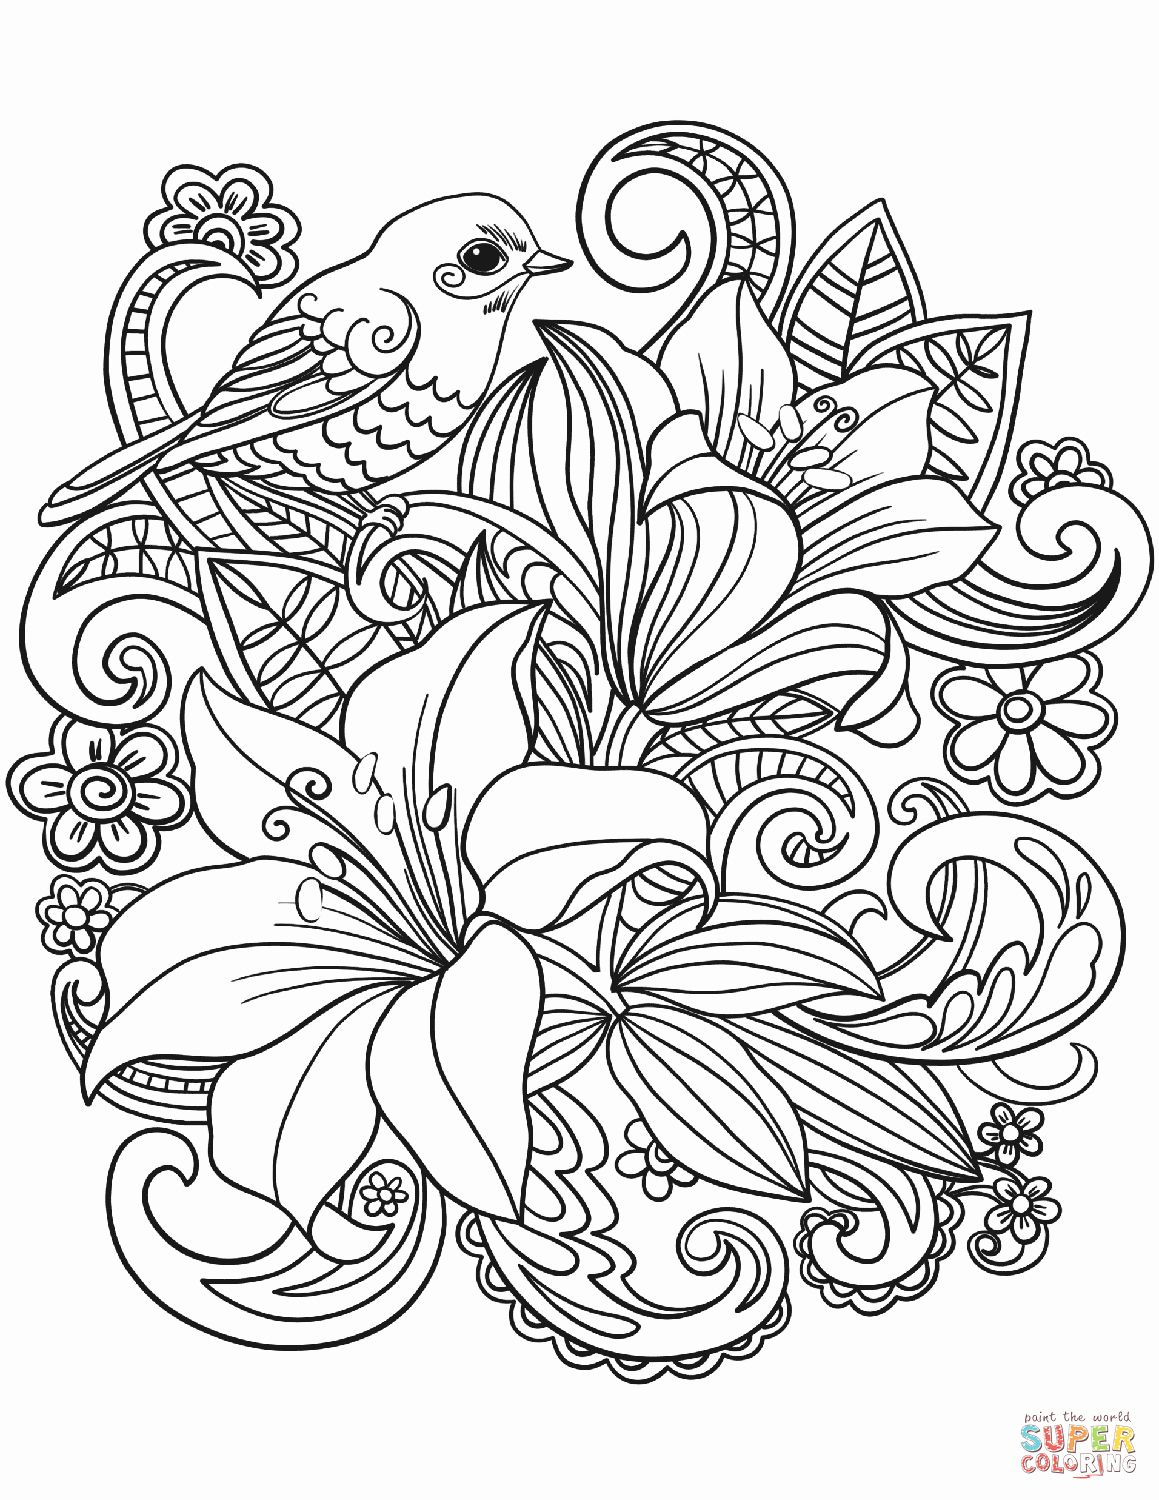 Printable Flowers Coloring Pages Fresh Butterflies On Flowers Coloring Page Hel Printable Flower Coloring Pages Mandala Coloring Pages Flowers Coloring Pages